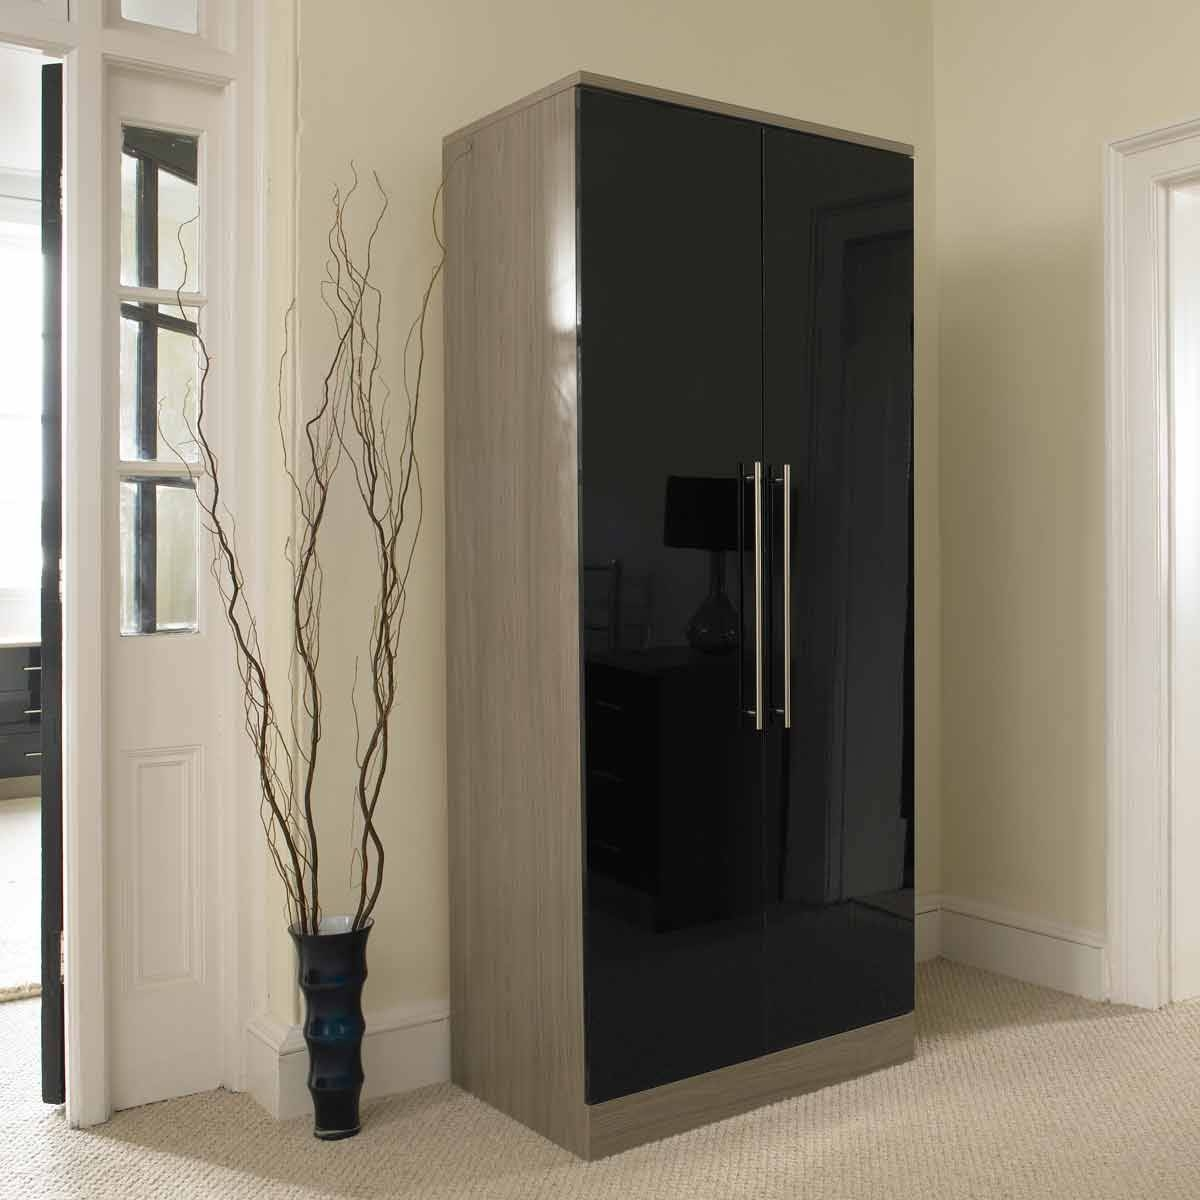 High Gloss Furniture | Ready 2 Drop intended for Gloss Black Wardrobes (Image 10 of 15)